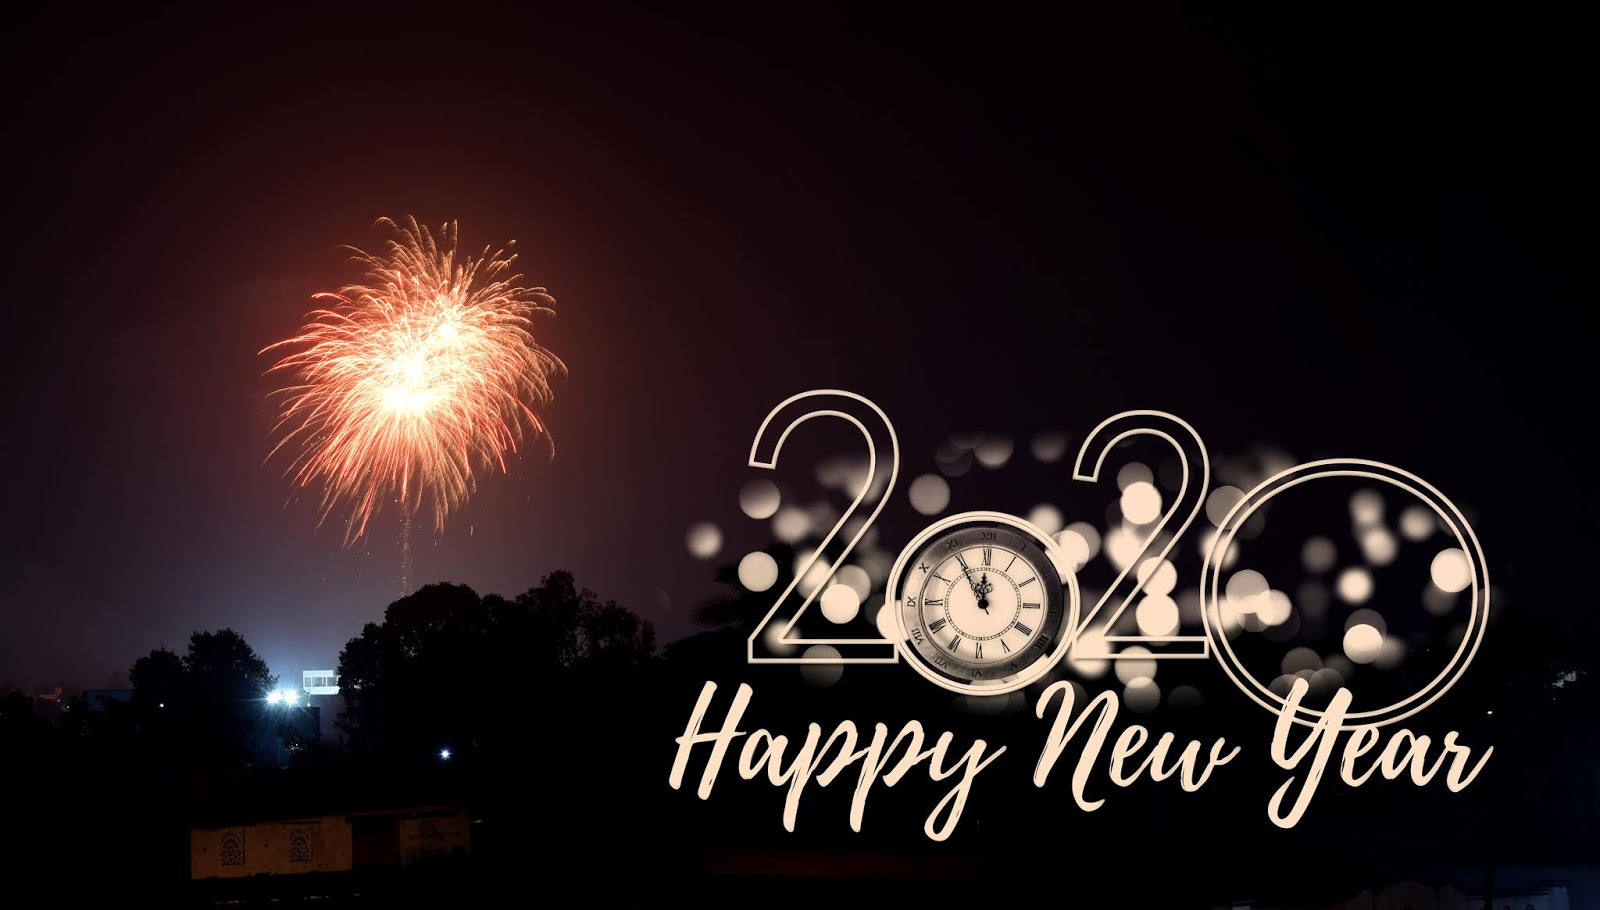 happy new year 2020 hd image, wishes, greeting